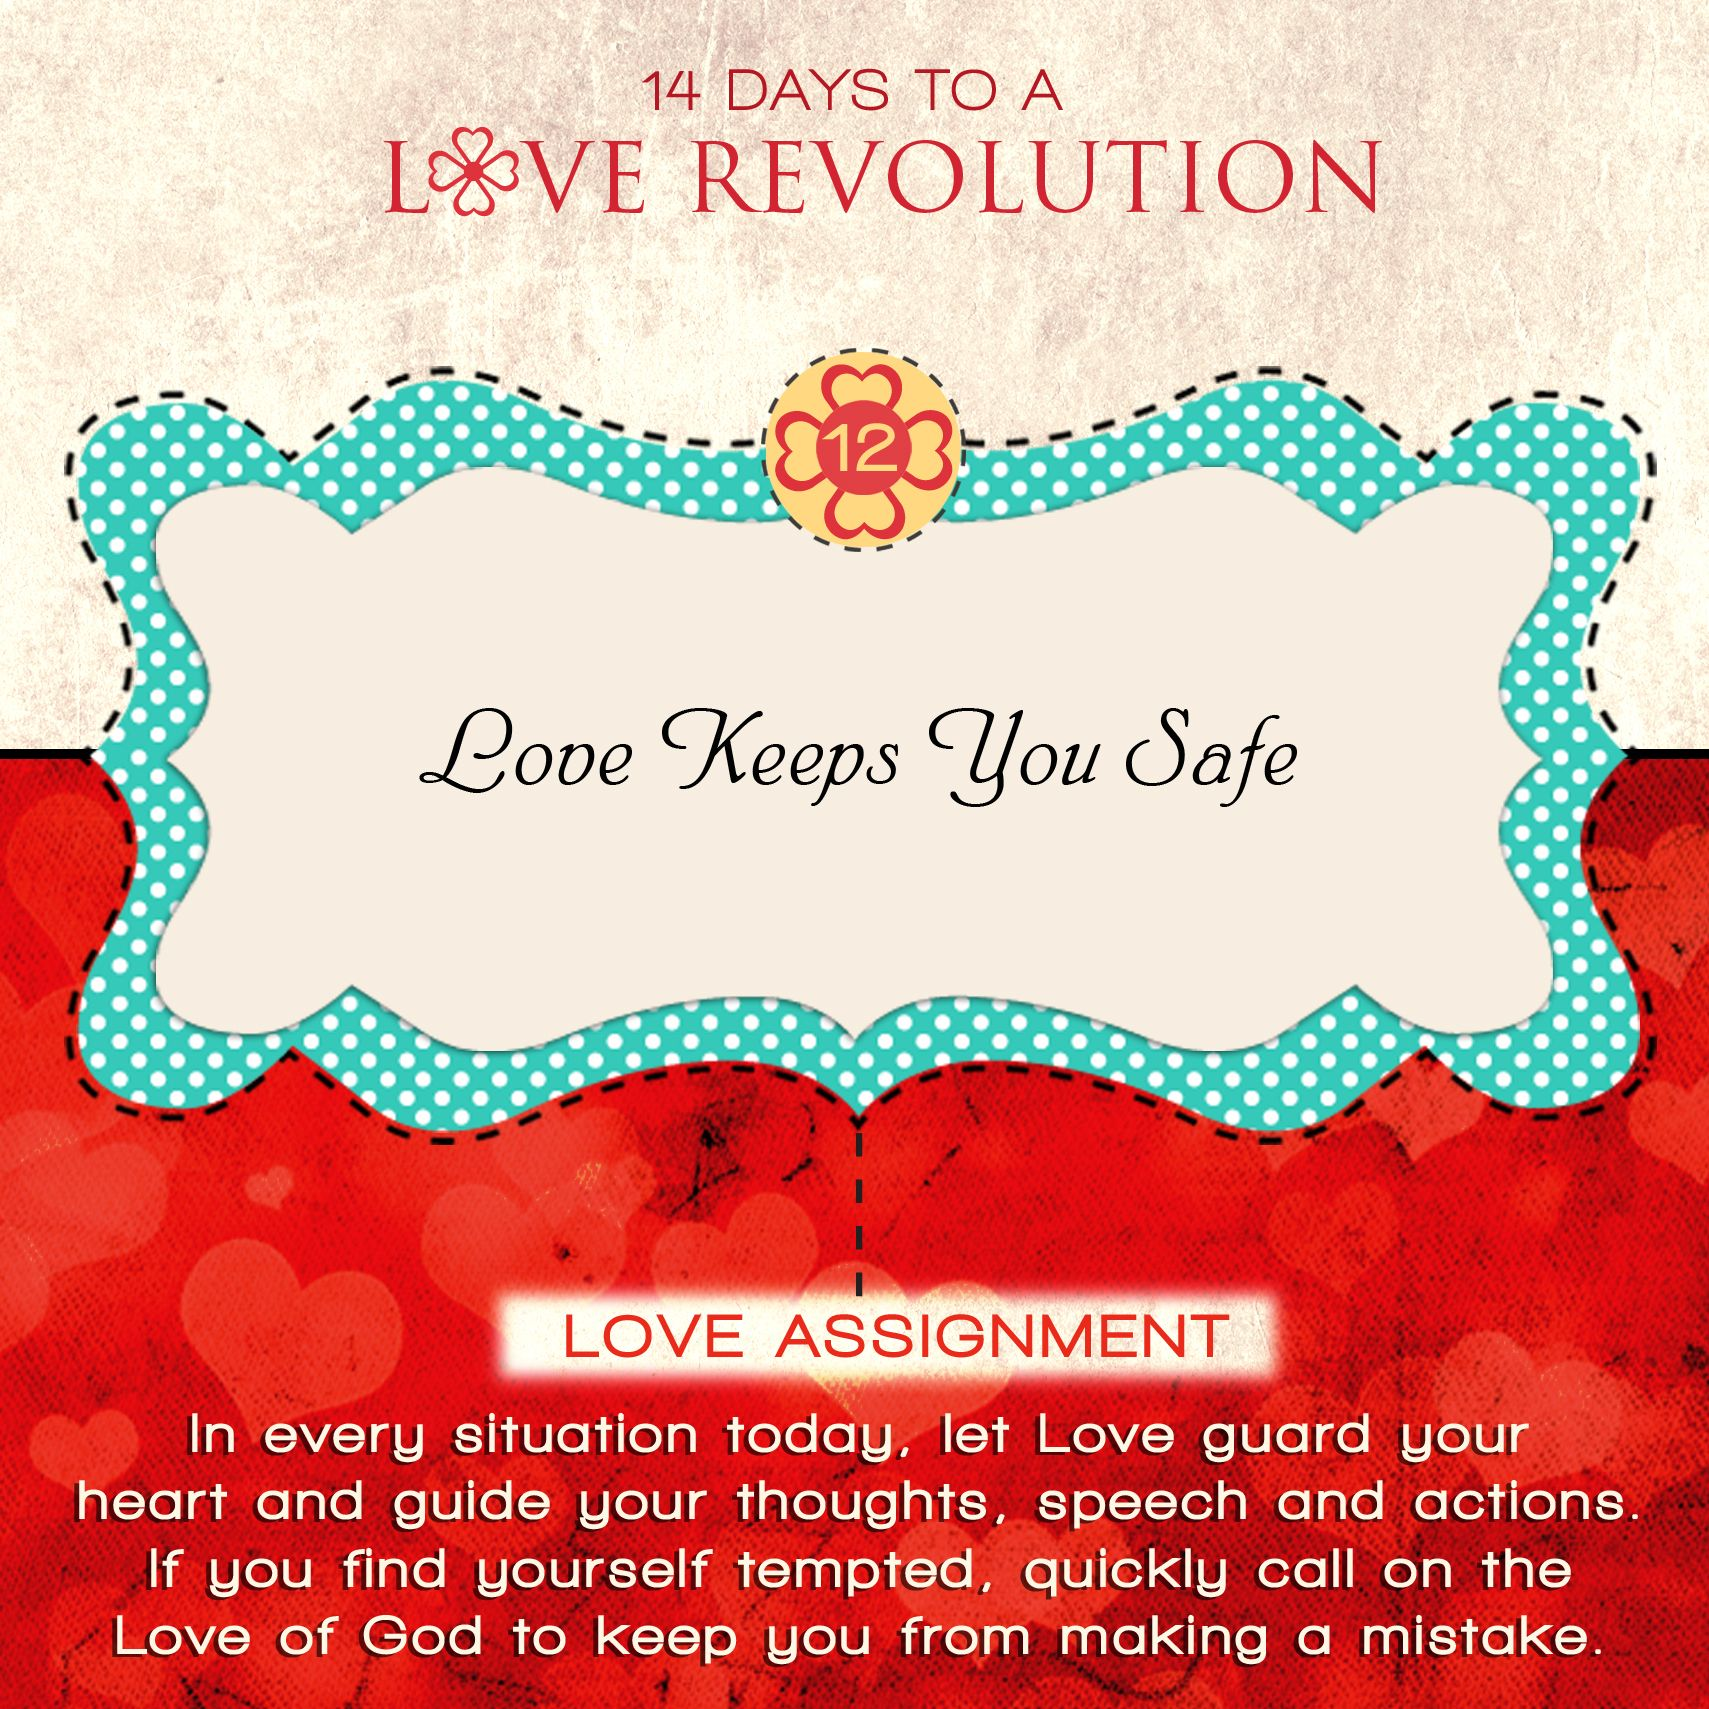 Day 12- Love Revolution: Did you know that Love can keep you safe? Learn more here: http://kennethcopelandministries.org/2014/02/day12lovekeepsyousafe/ #KCM #Love #Valentines #Love Revolution